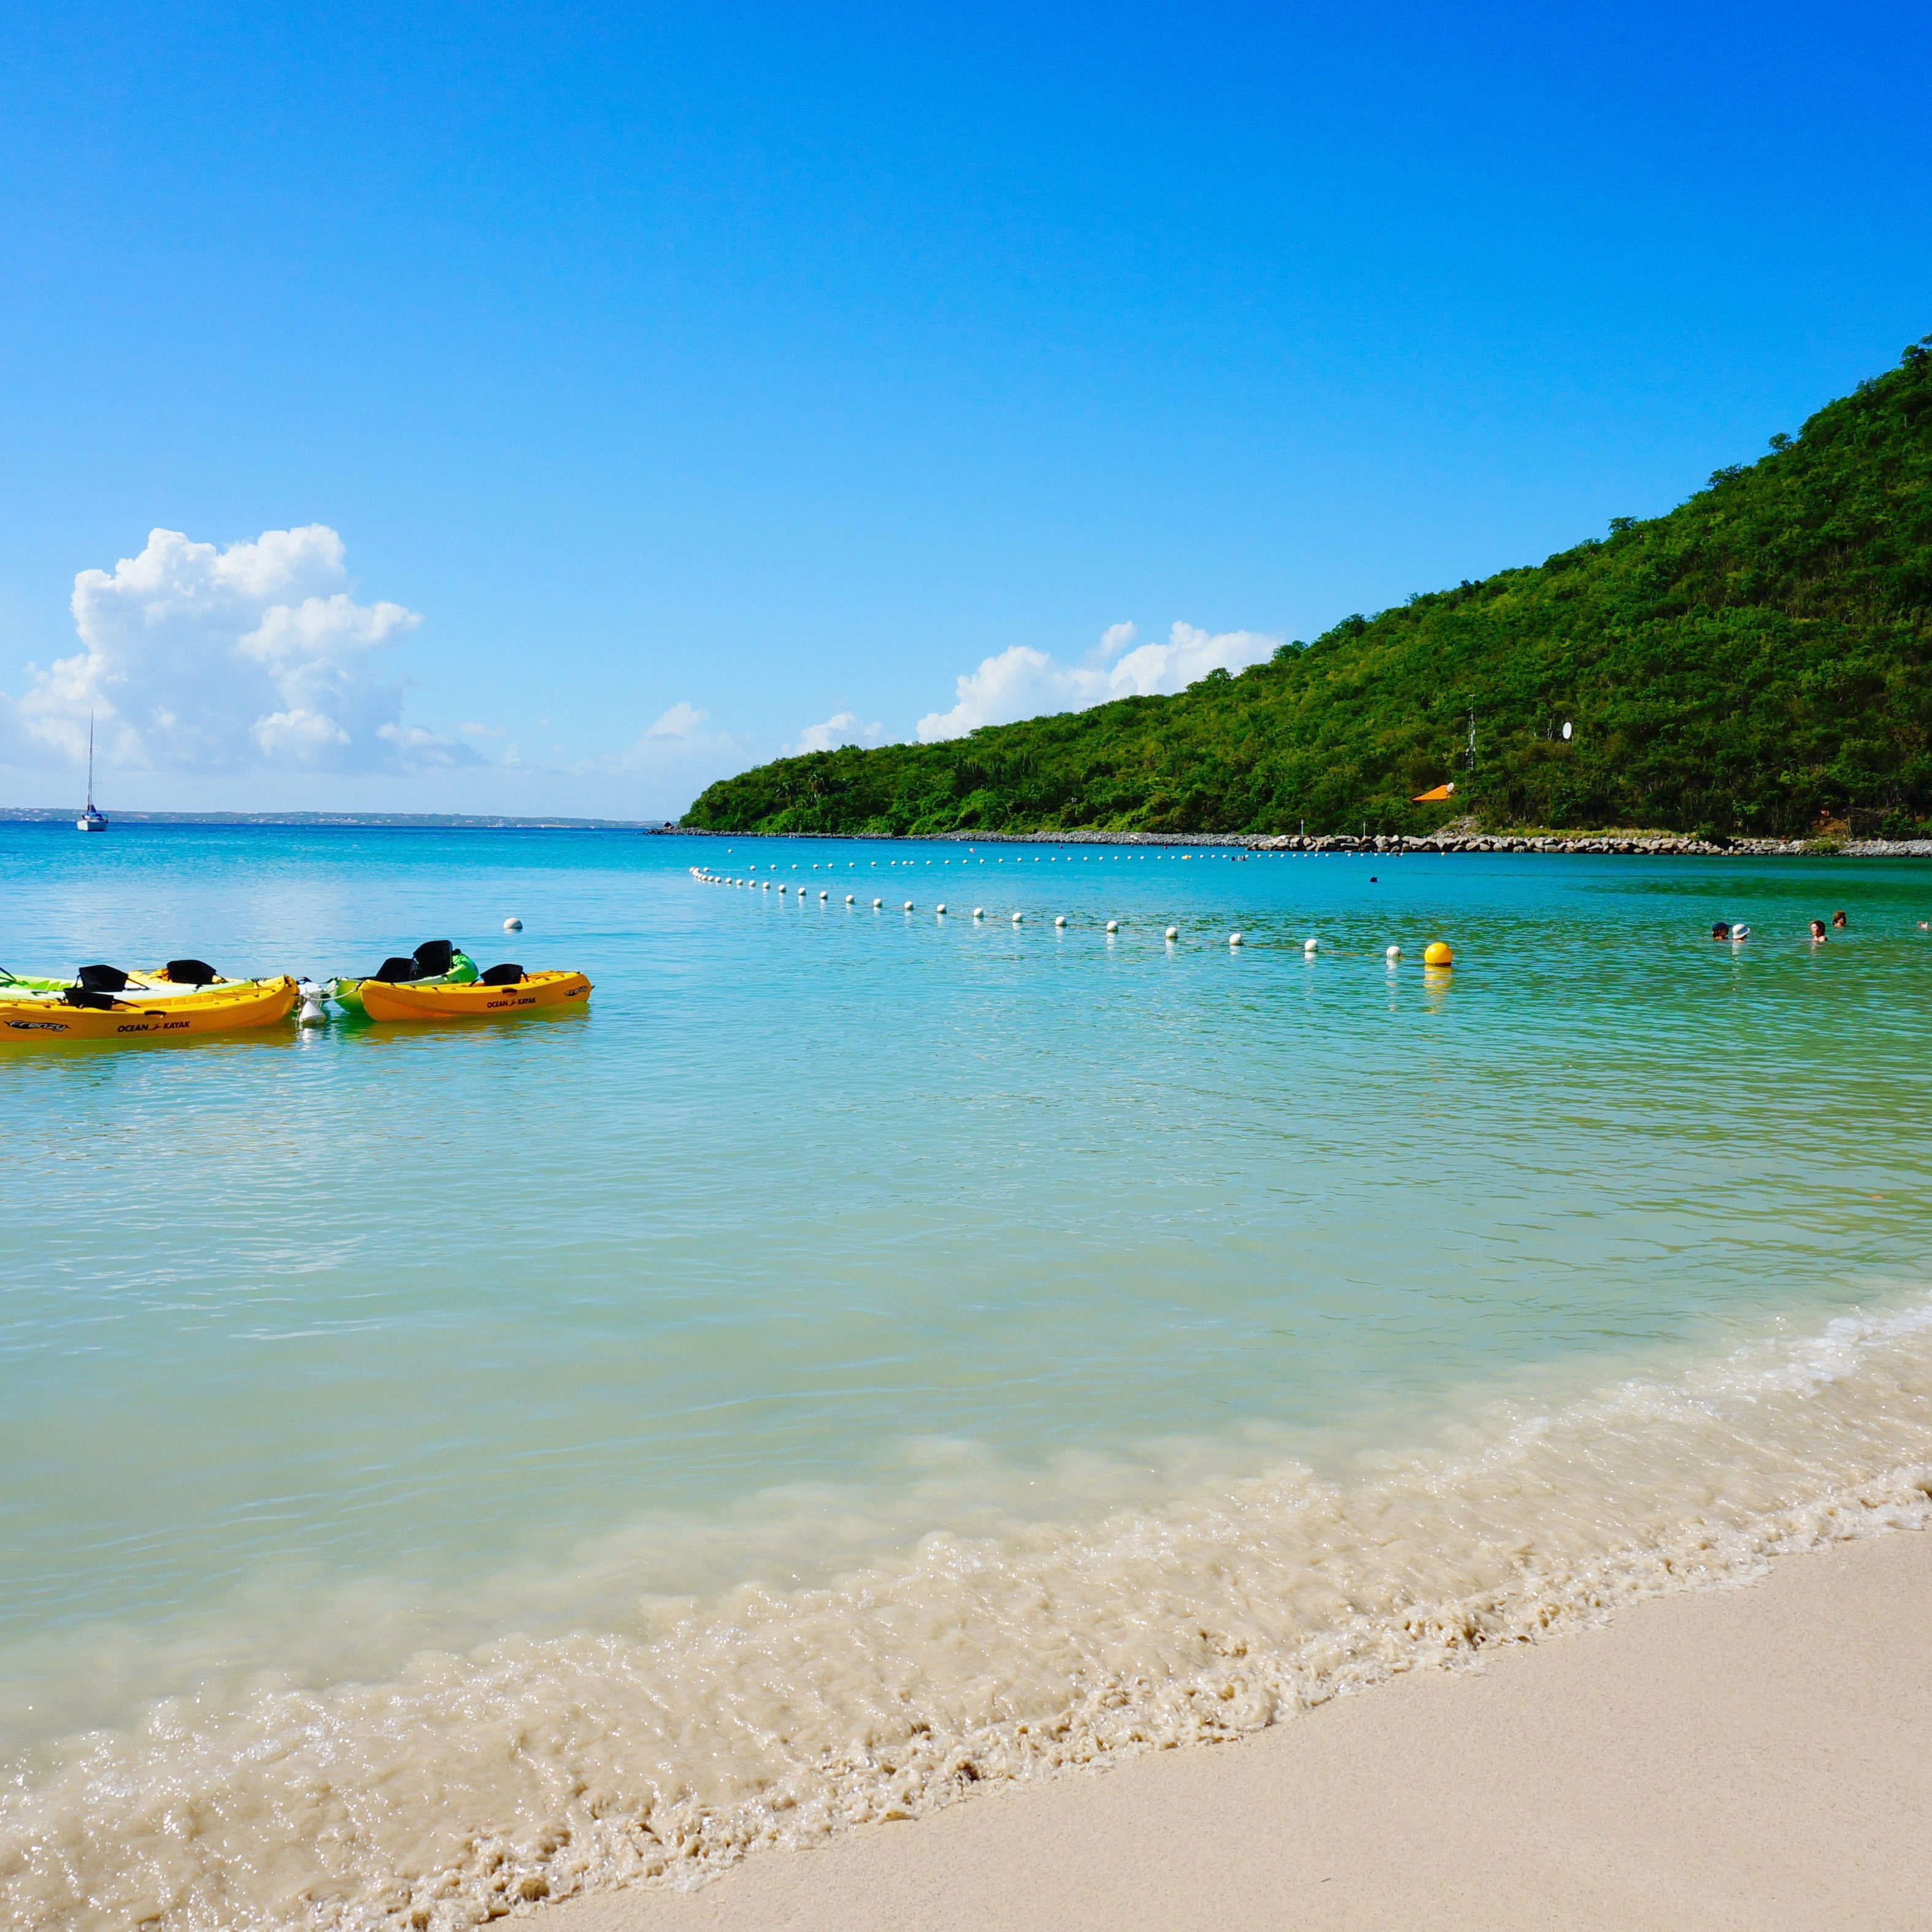 10 REASONS WHY YOUR NEXT TRIP SHOULD BE: ST. MAARTEN